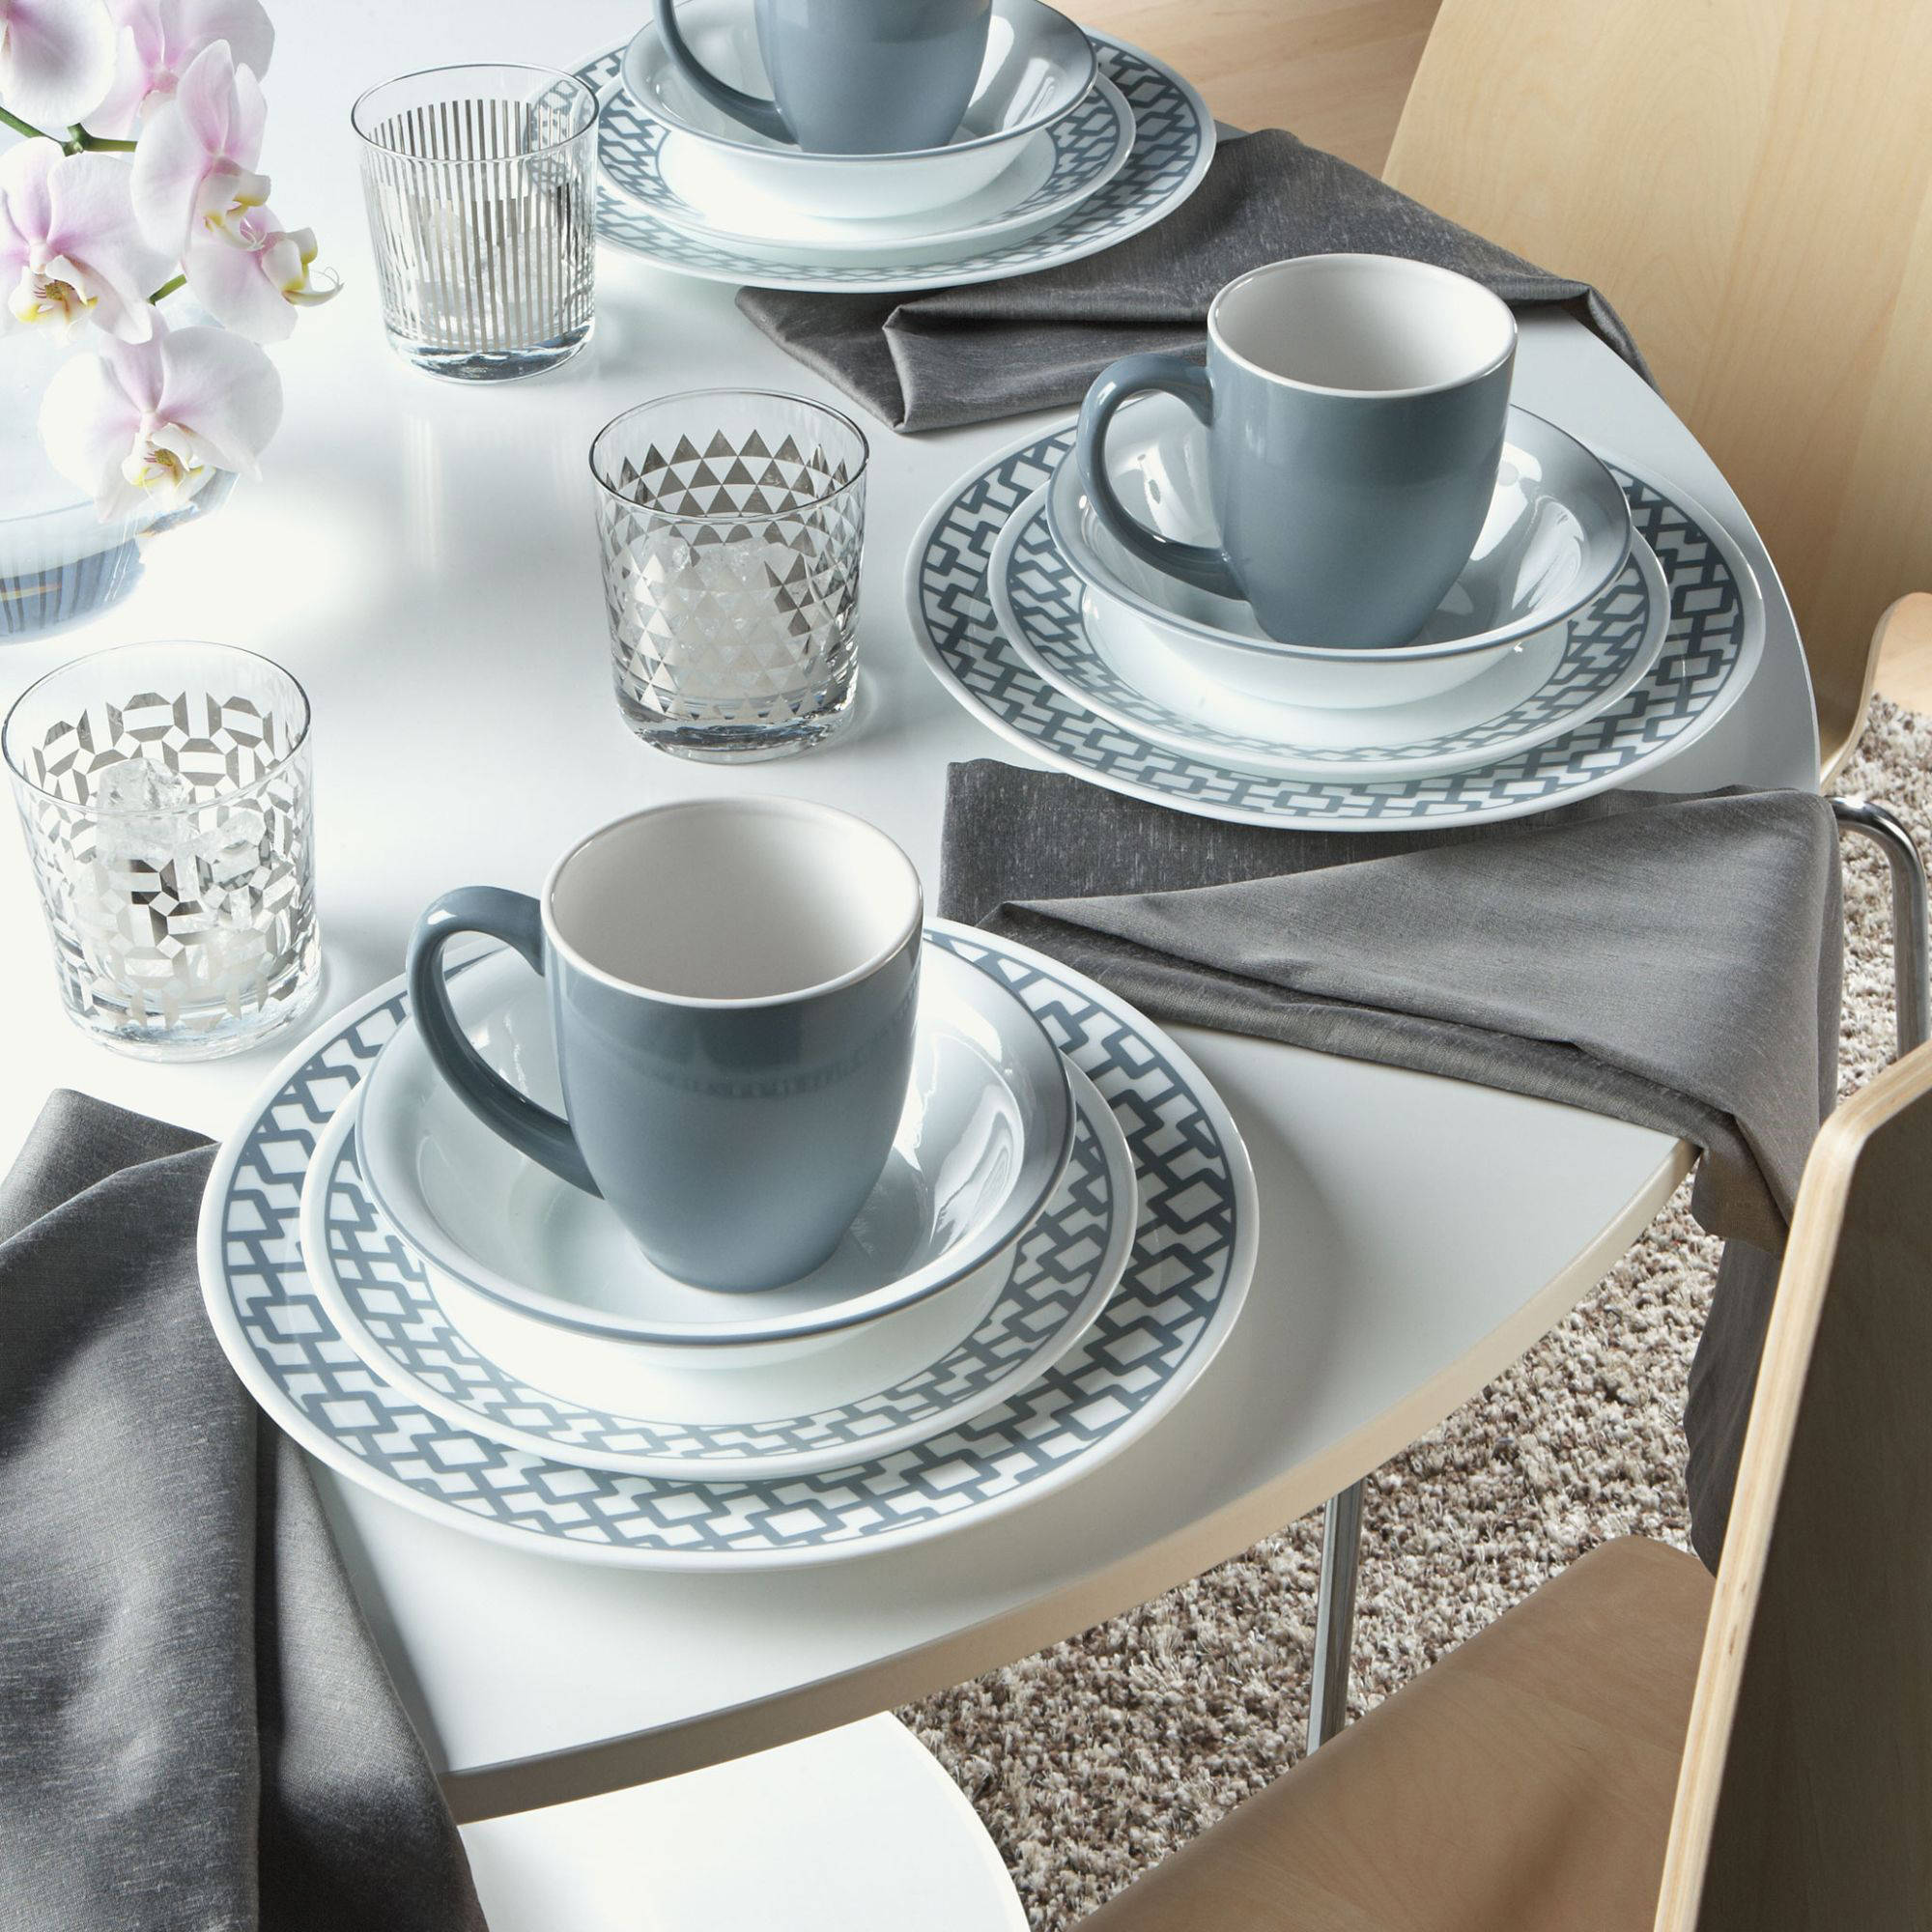 Corelle Impression Urban Grid 16-piece Dinnerware Set